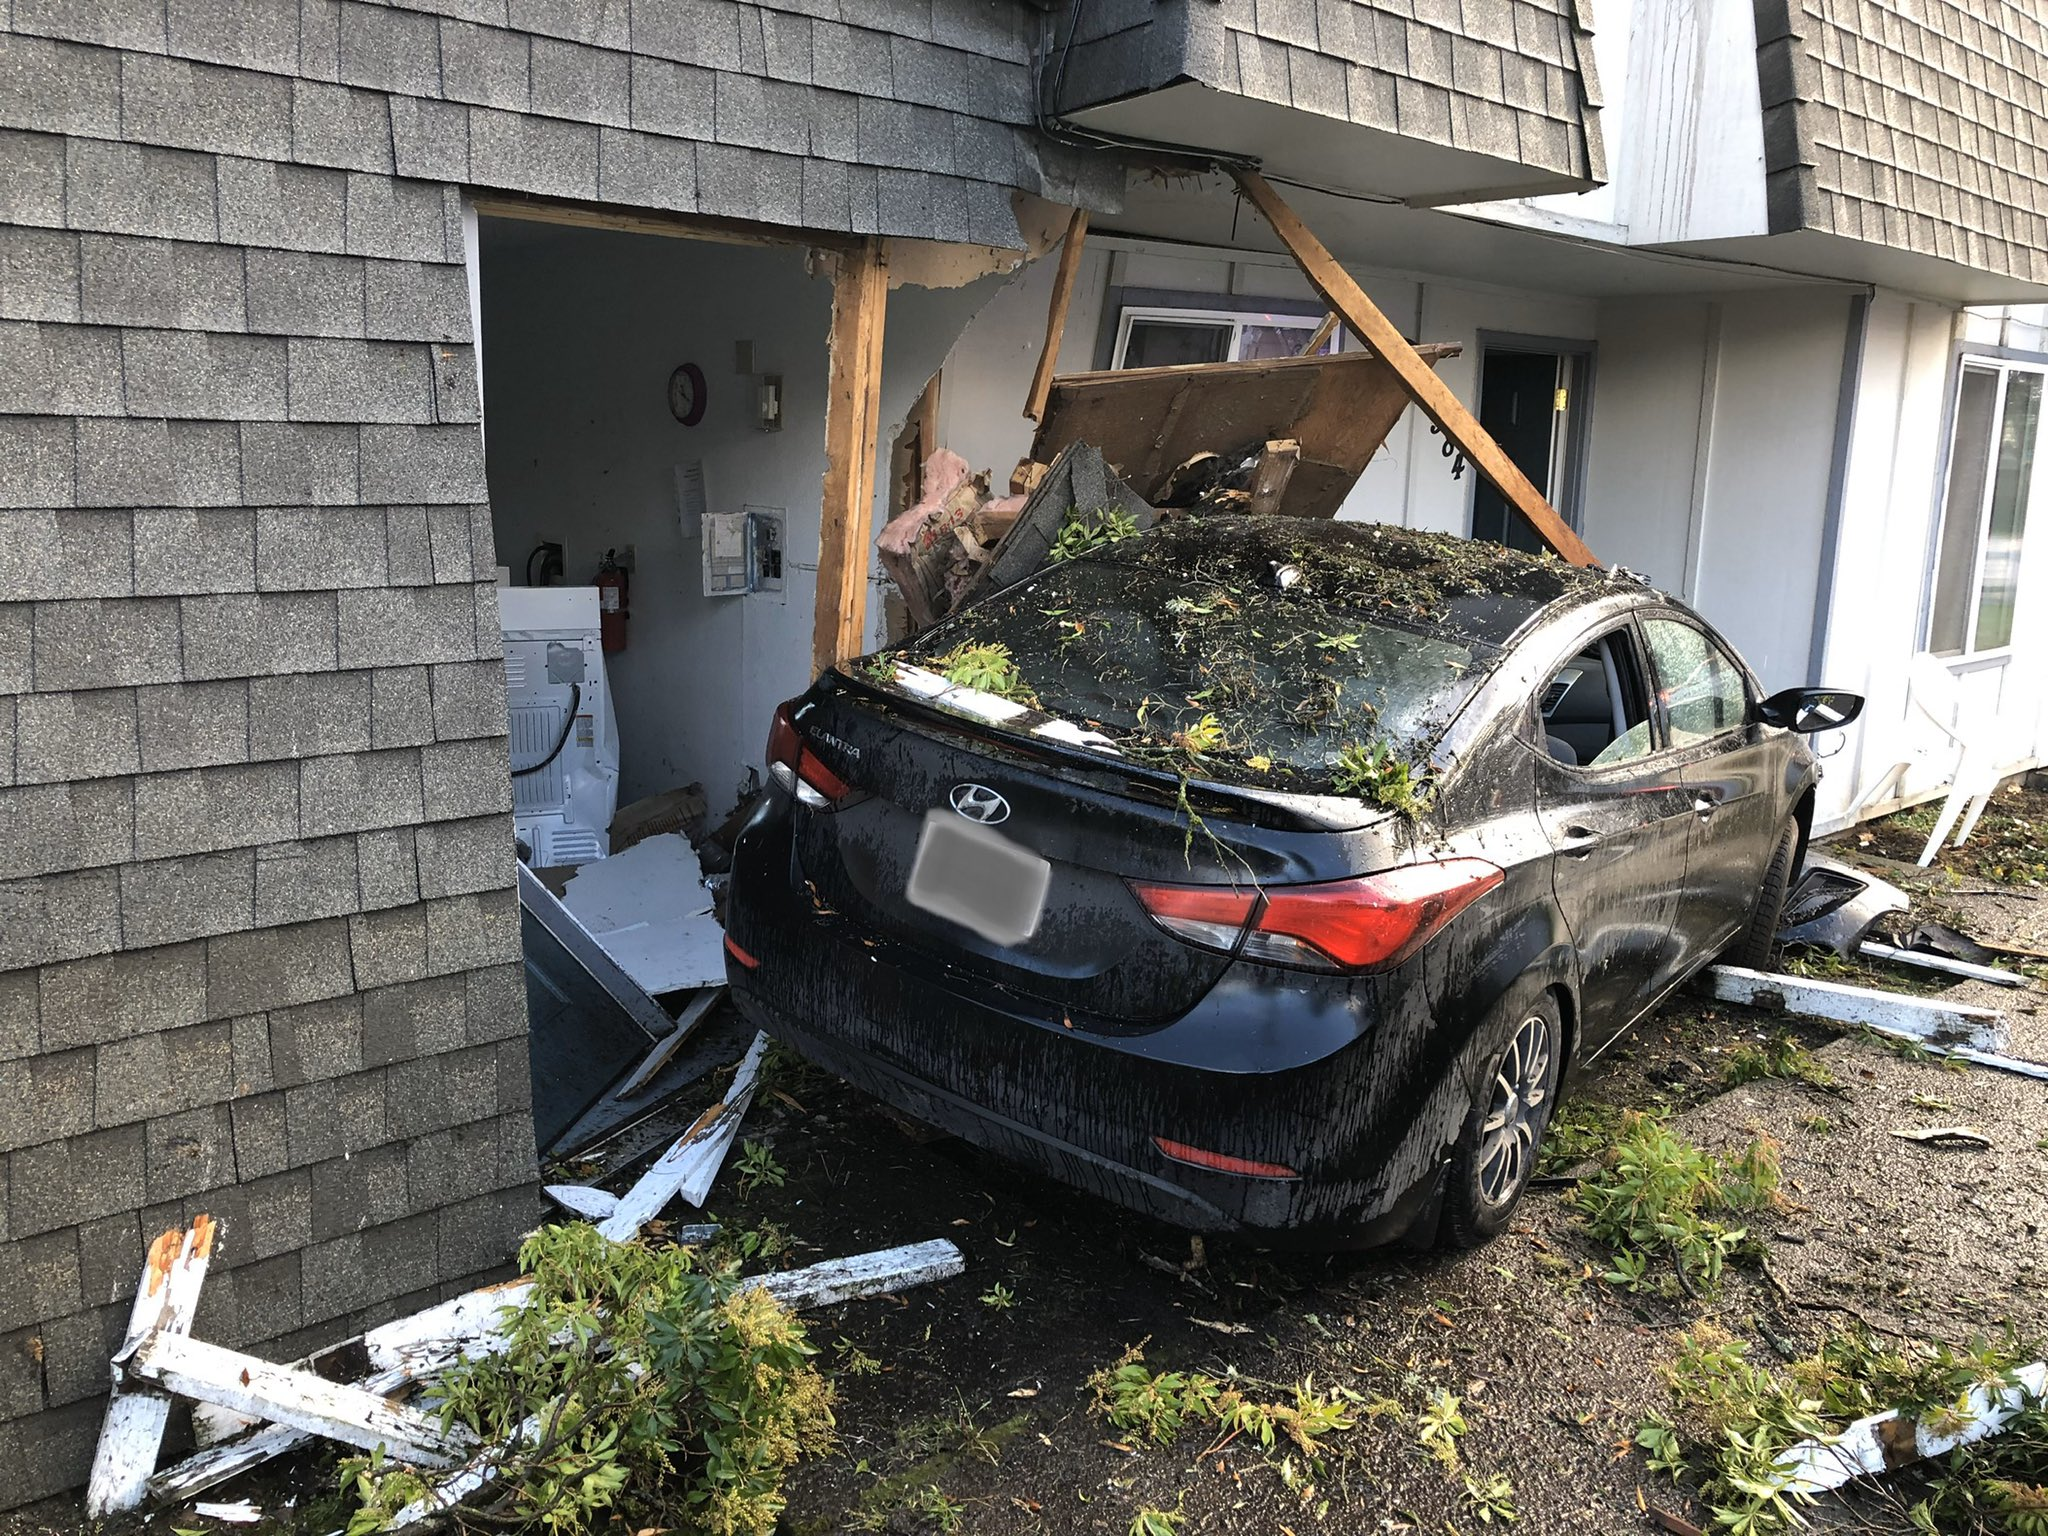 A driver crashed into an apartment in Southeast Portland on Jan. 1, 2020. Photo courtesy Clackamas County Sheriff's Office